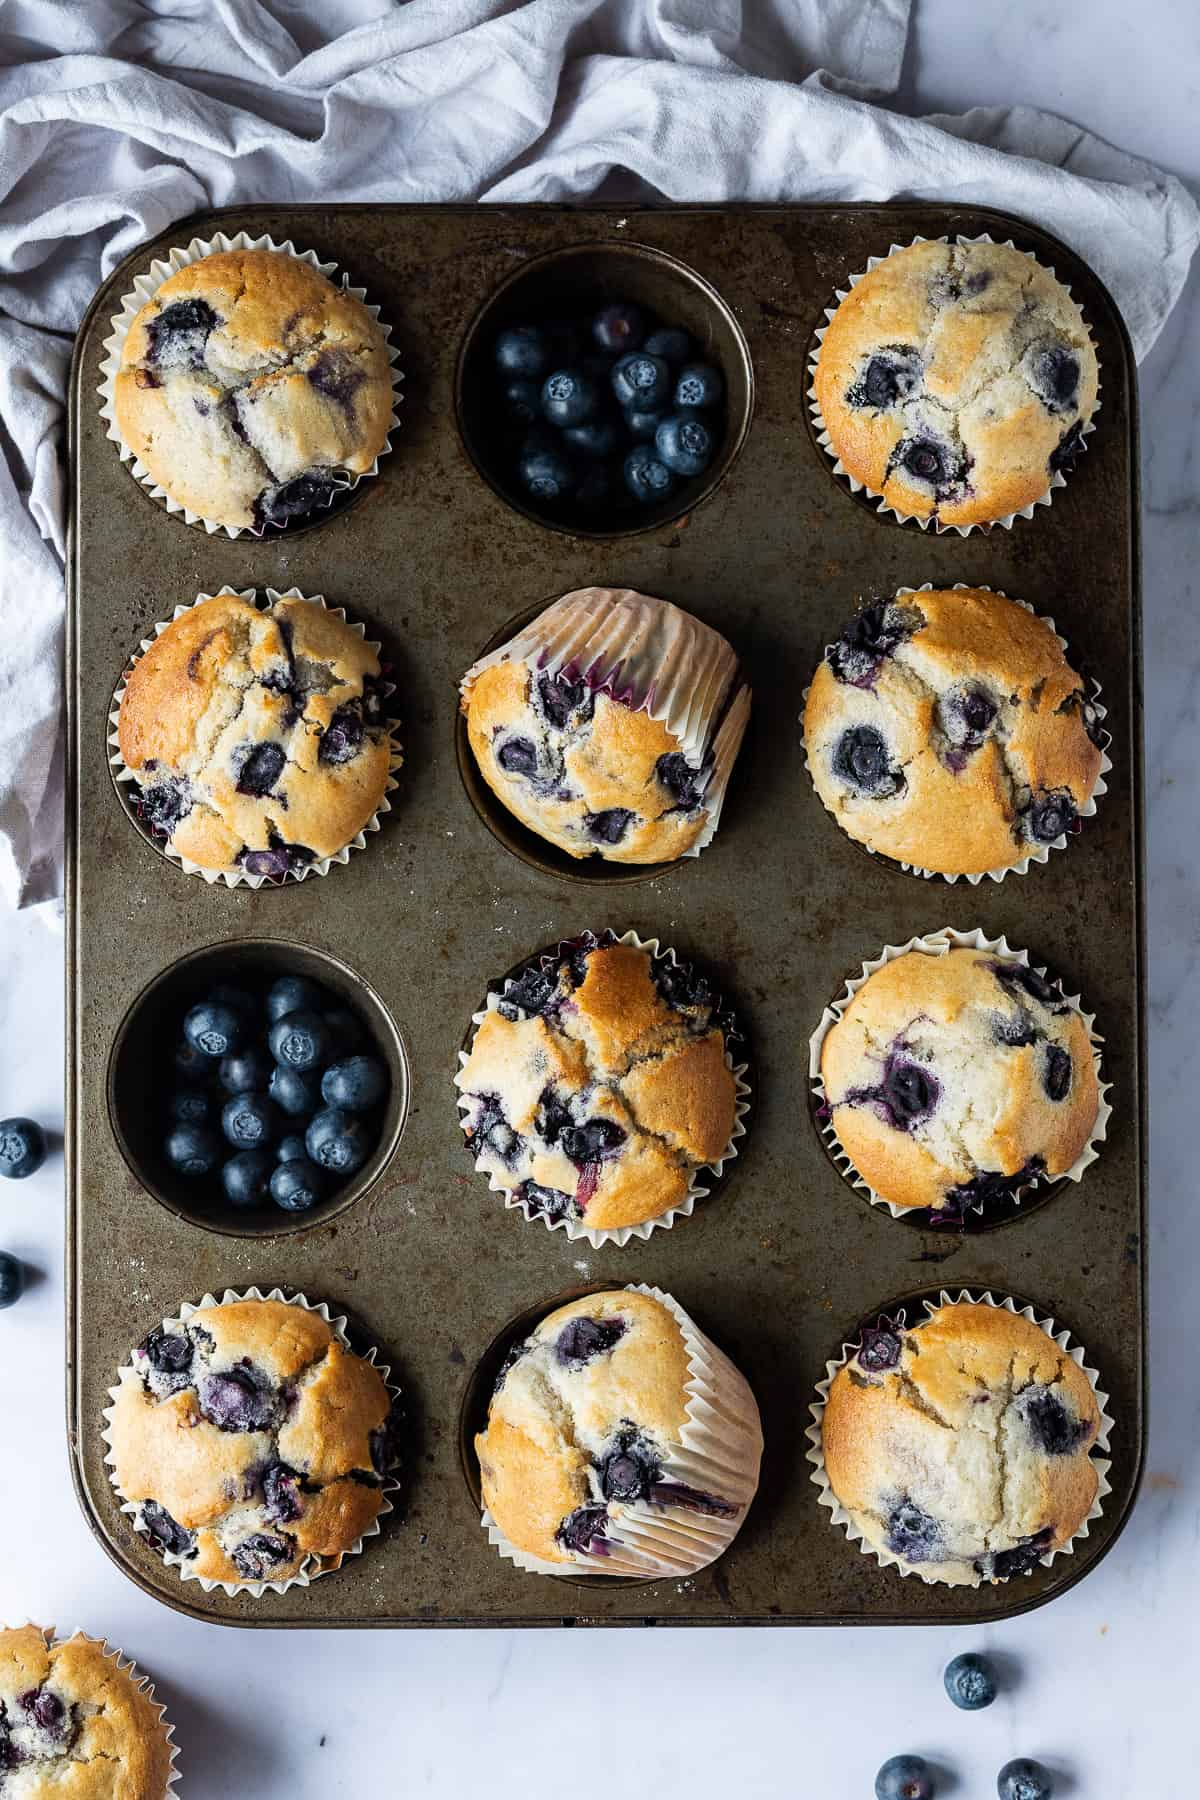 A tray of vegan blueberry muffins on a marble background with a grey cloth.